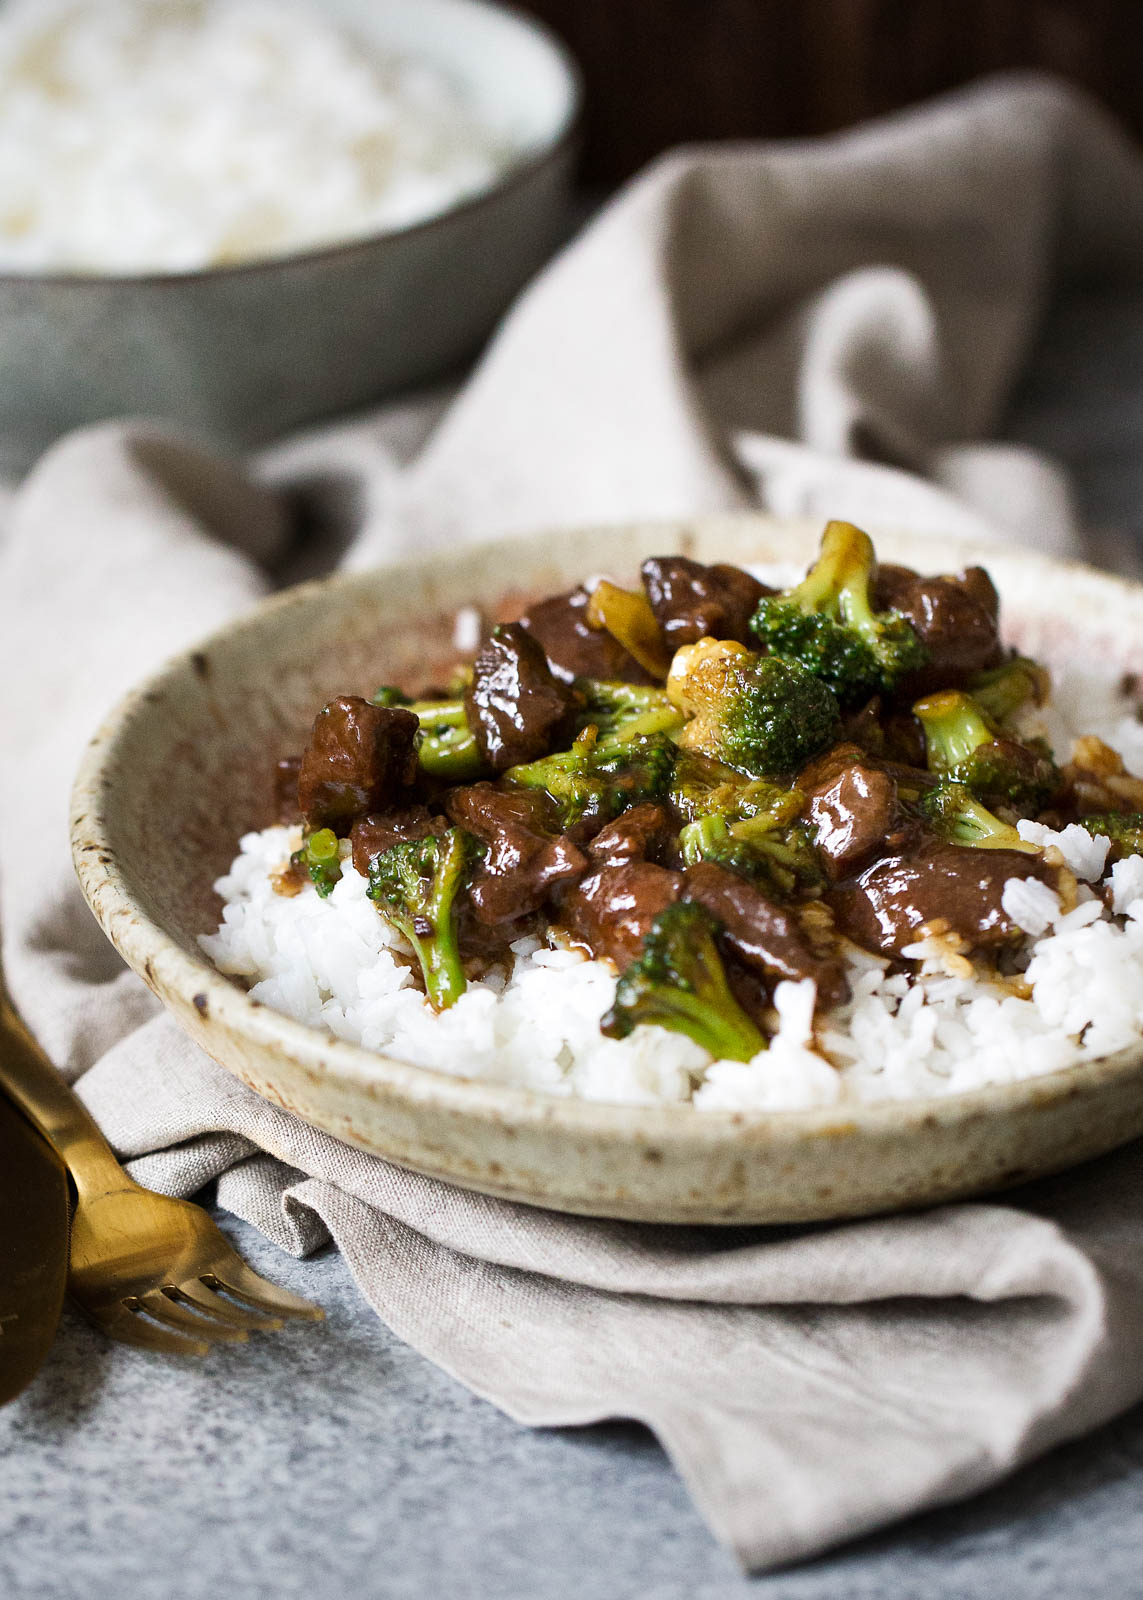 Slow cooker beef and broccoli table for two by julie wampler slow cooker beef and broccoli is easy to make at home and such a warm comforting forumfinder Choice Image